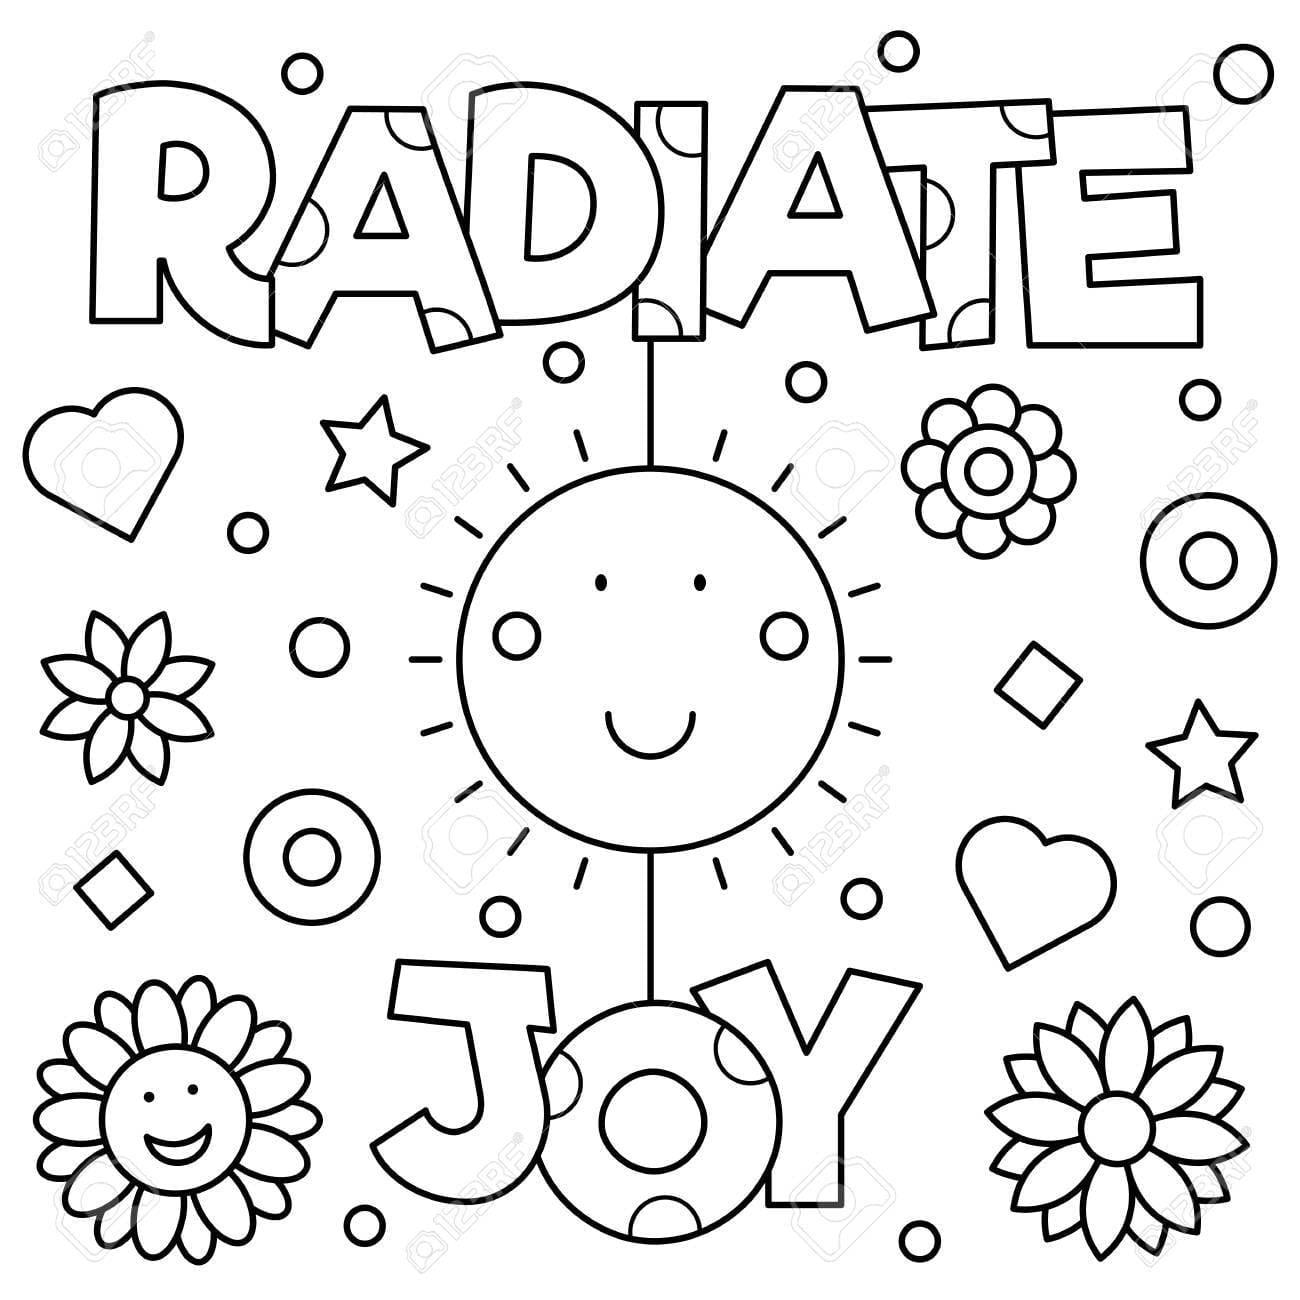 Radiate Joy Coloring Page  Vector Illustration  Royalty Free